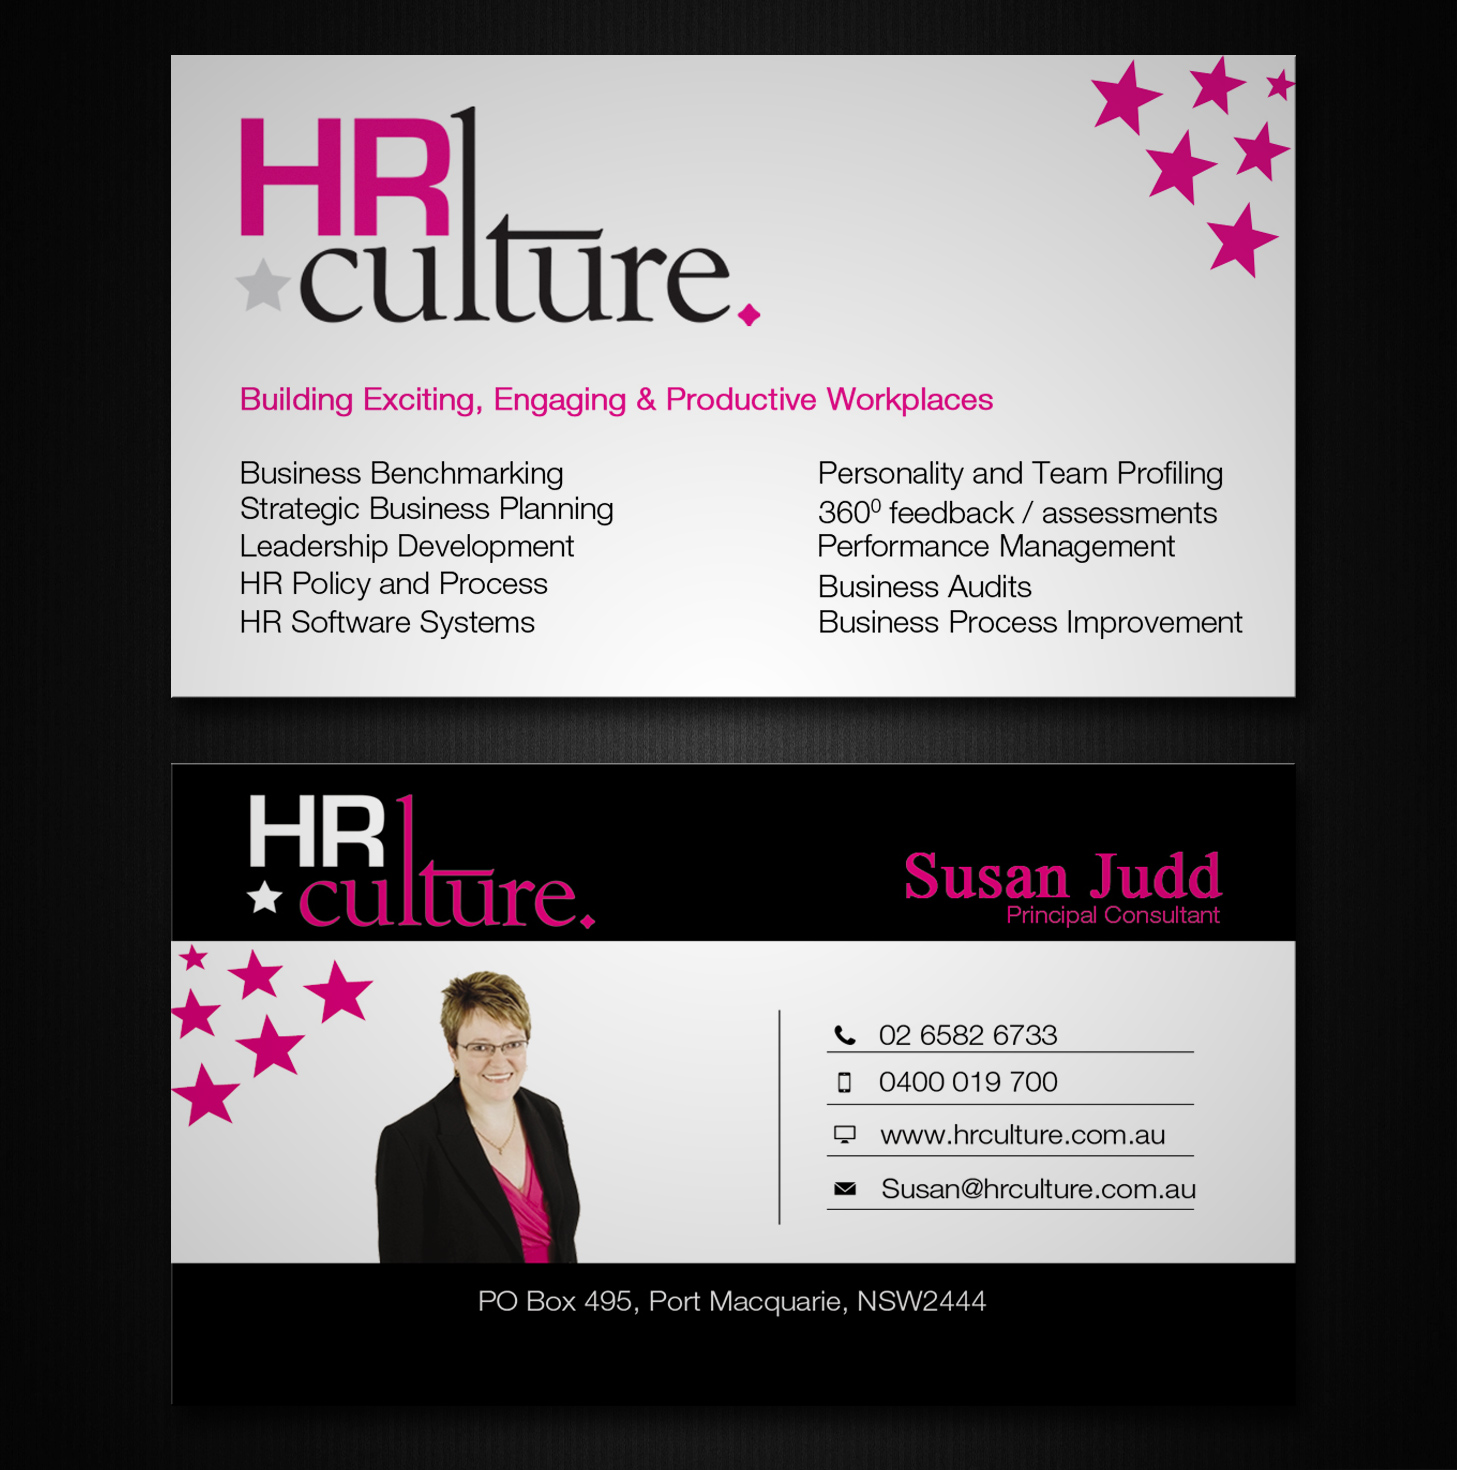 Fett modern business card design for hr culture by lanka for Business design consultant